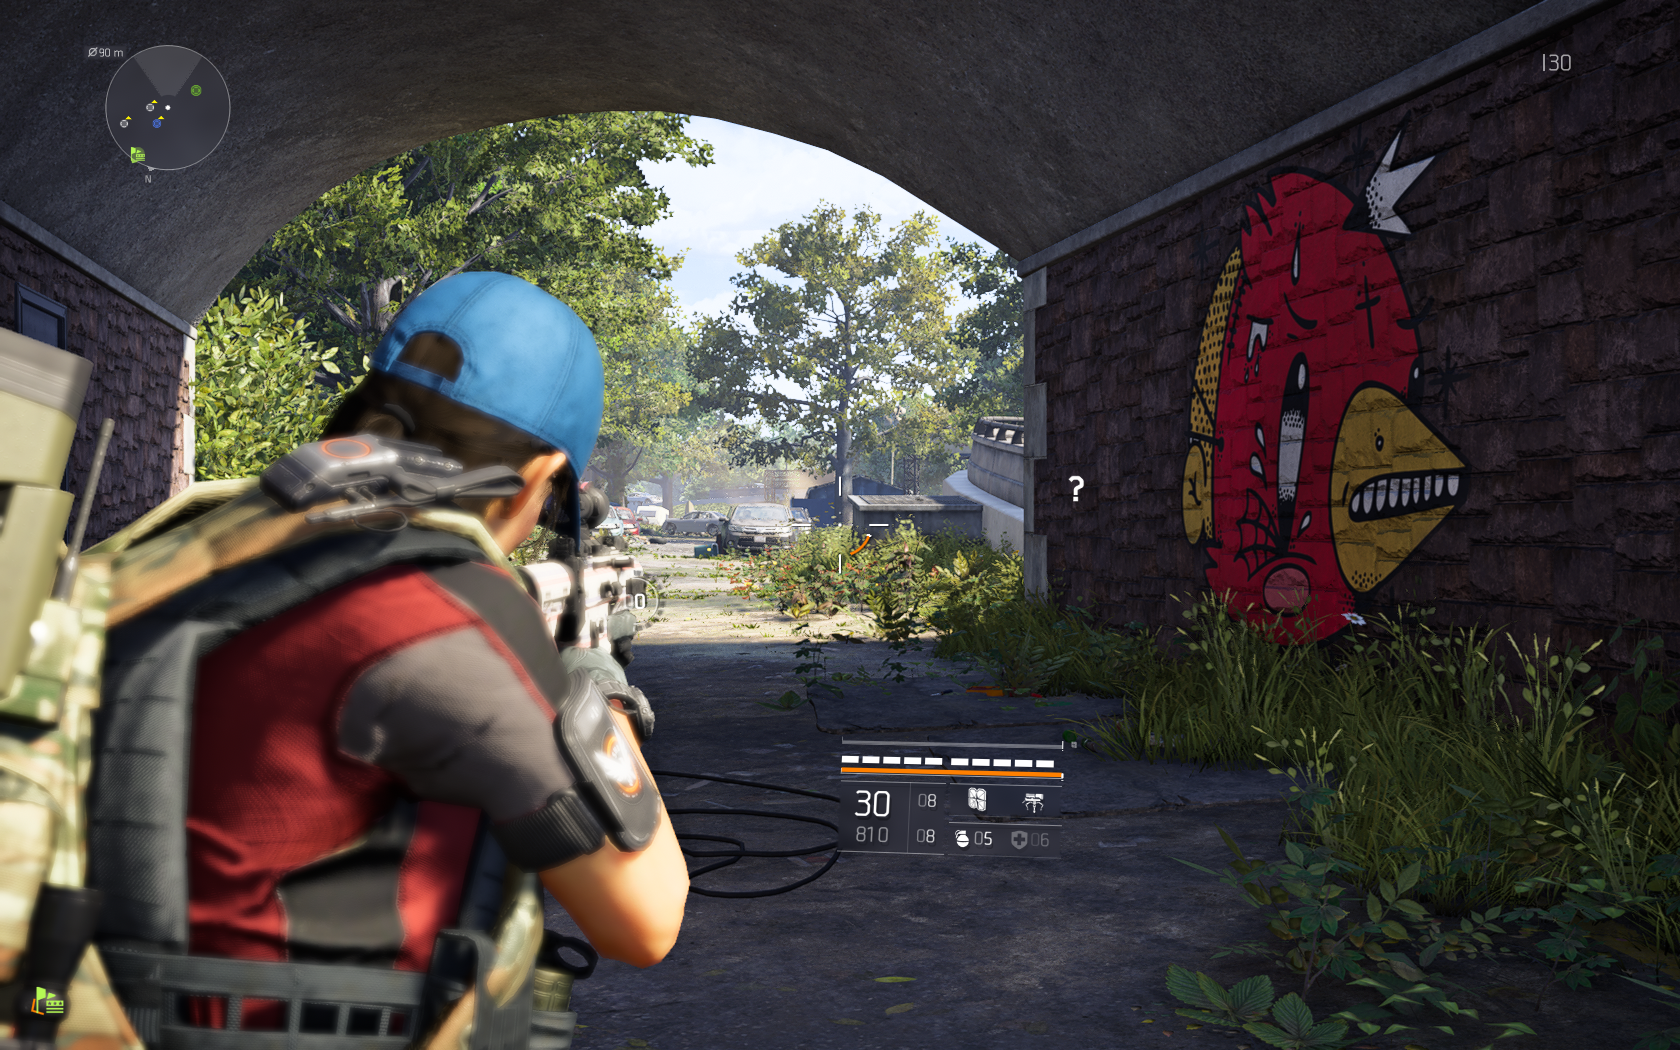 Tom Clancy's The Division 2 Screenshot 2019.03.20 - 14.00.56.97.png